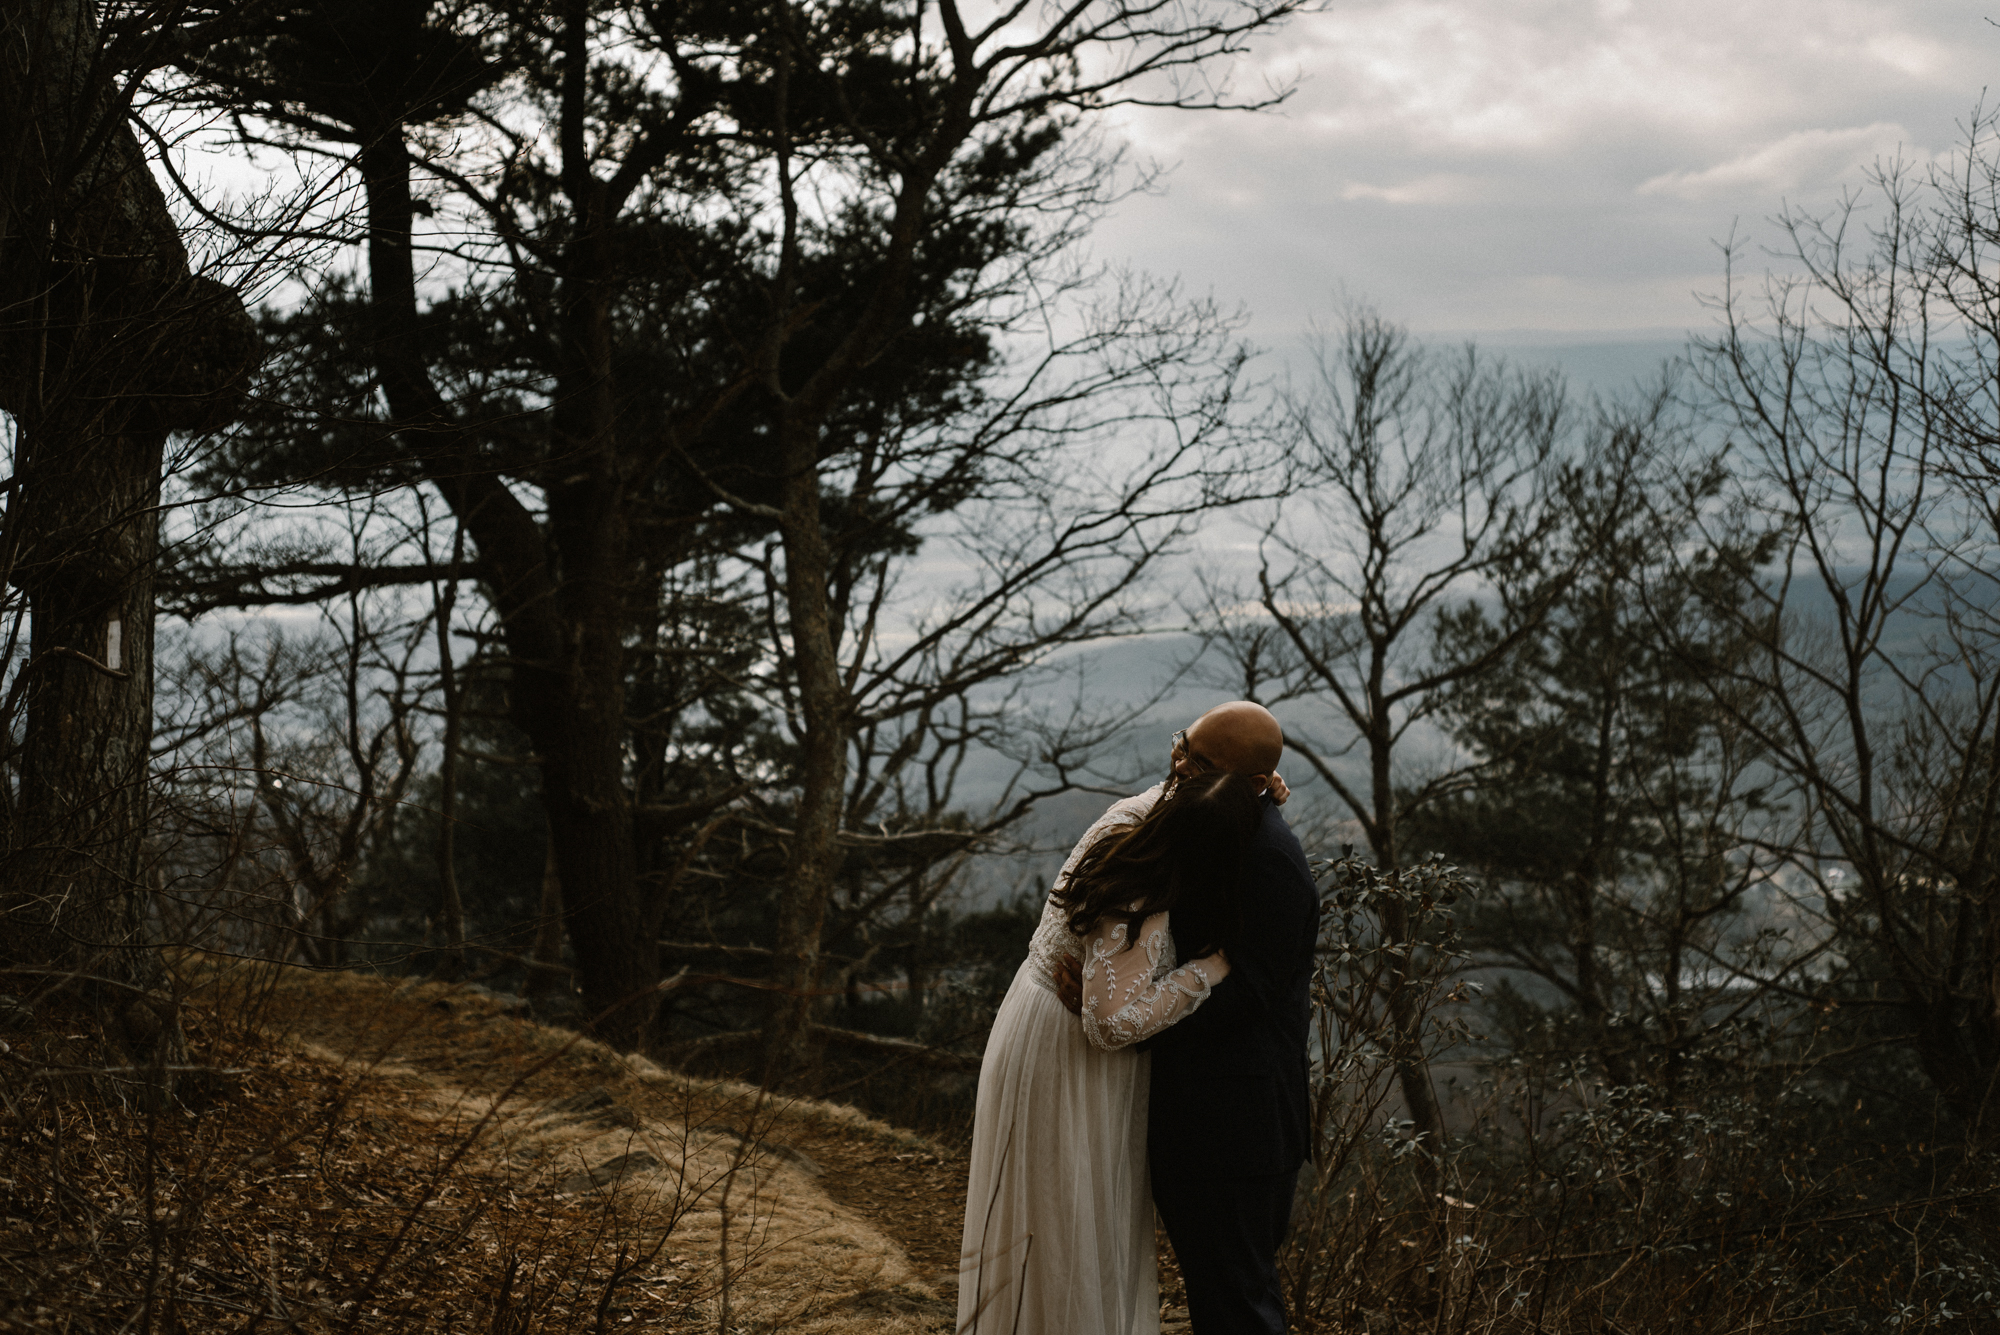 Emma and Jeddah - Intimate Luray Wedding - Shenandoah National Park Wedding - Adventure Elopement in Virginia - Shenandoah National Park Elopement_66.jpg